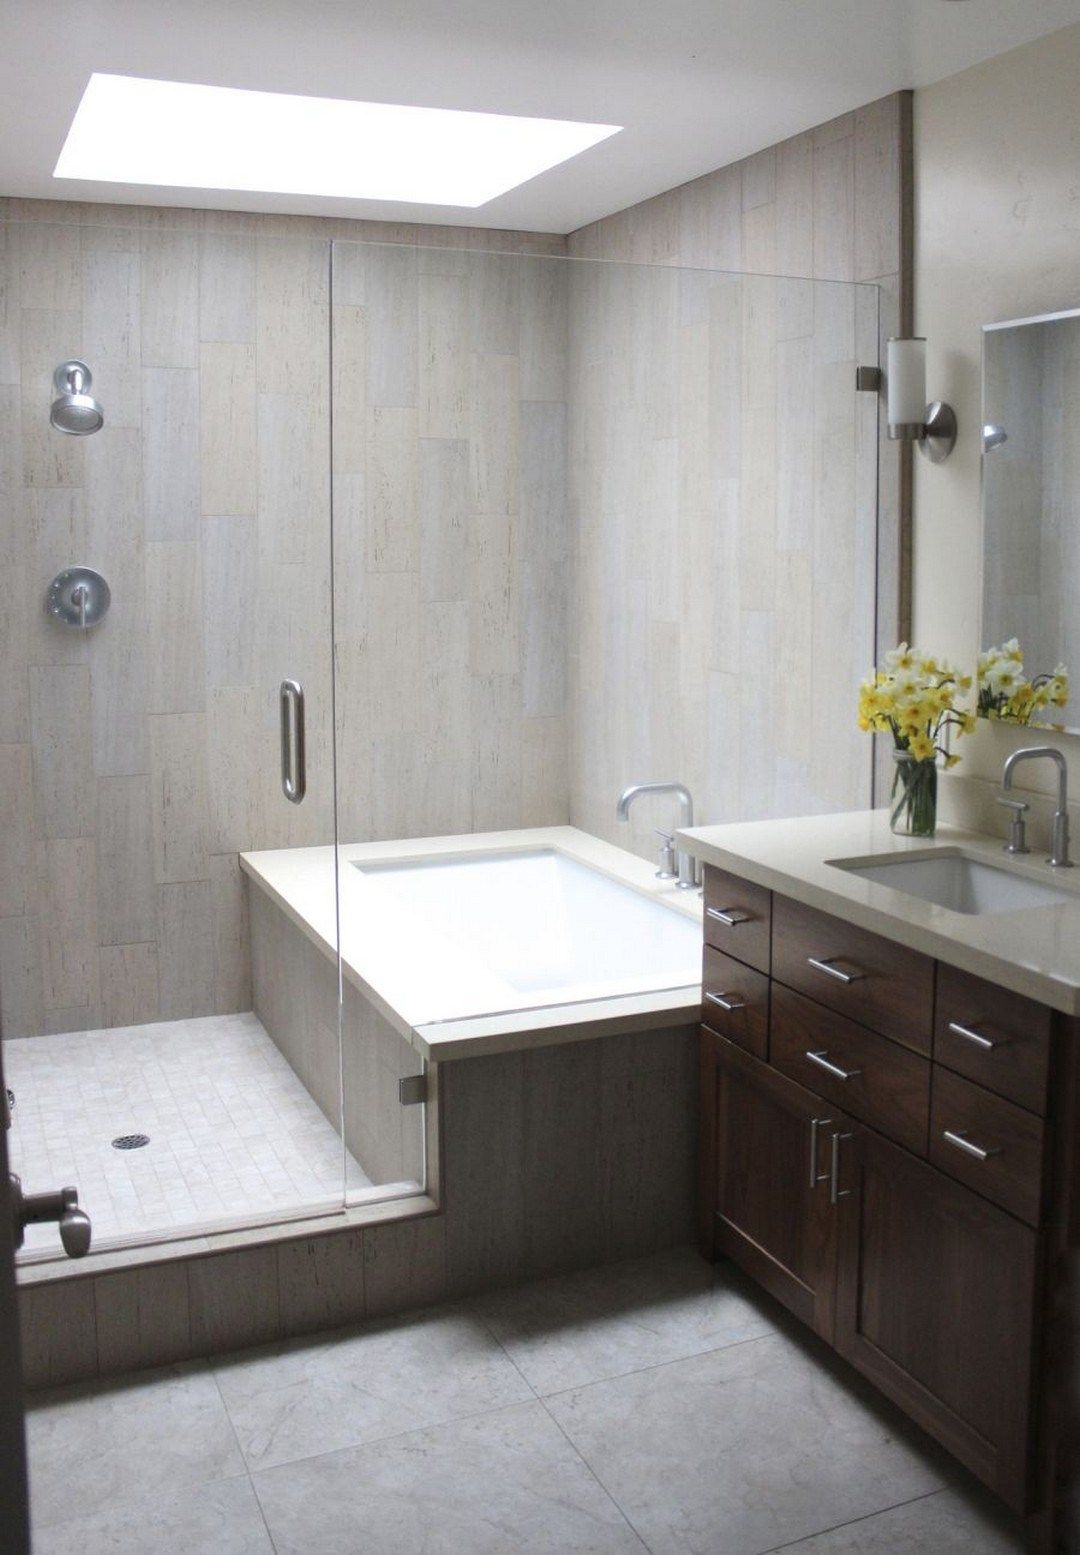 99 Small Bathroom Tub Shower Combo Remodeling Ideas 75 99architecture Small Bathroom Remodel Bathroom Remodel Master Small Master Bathroom